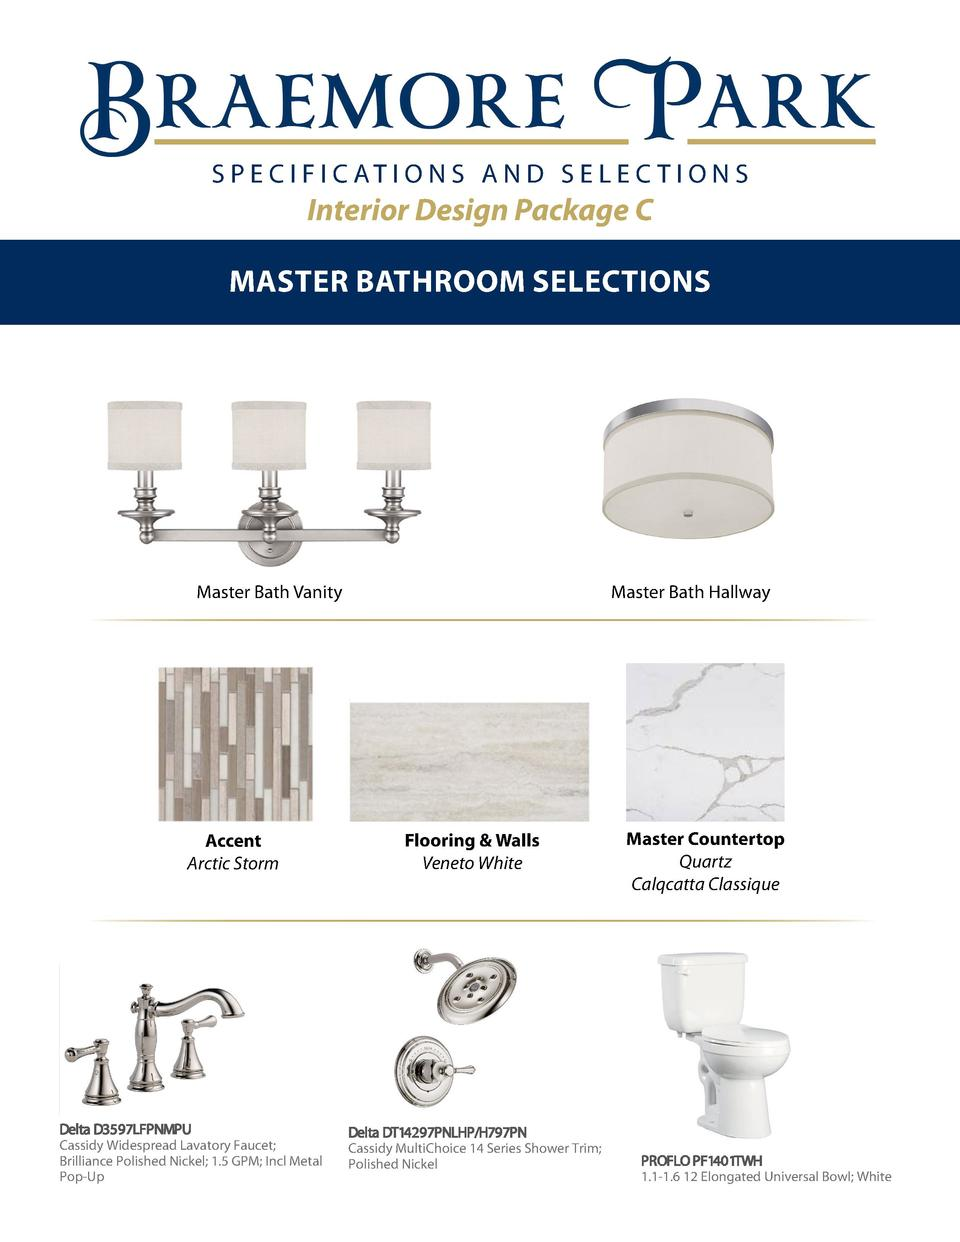 S P E C I F I C AT I O N S A N D S E L E C T I O N S  Interior Design Package C Master Bathroom Selections  2 Vibernum  Ma...